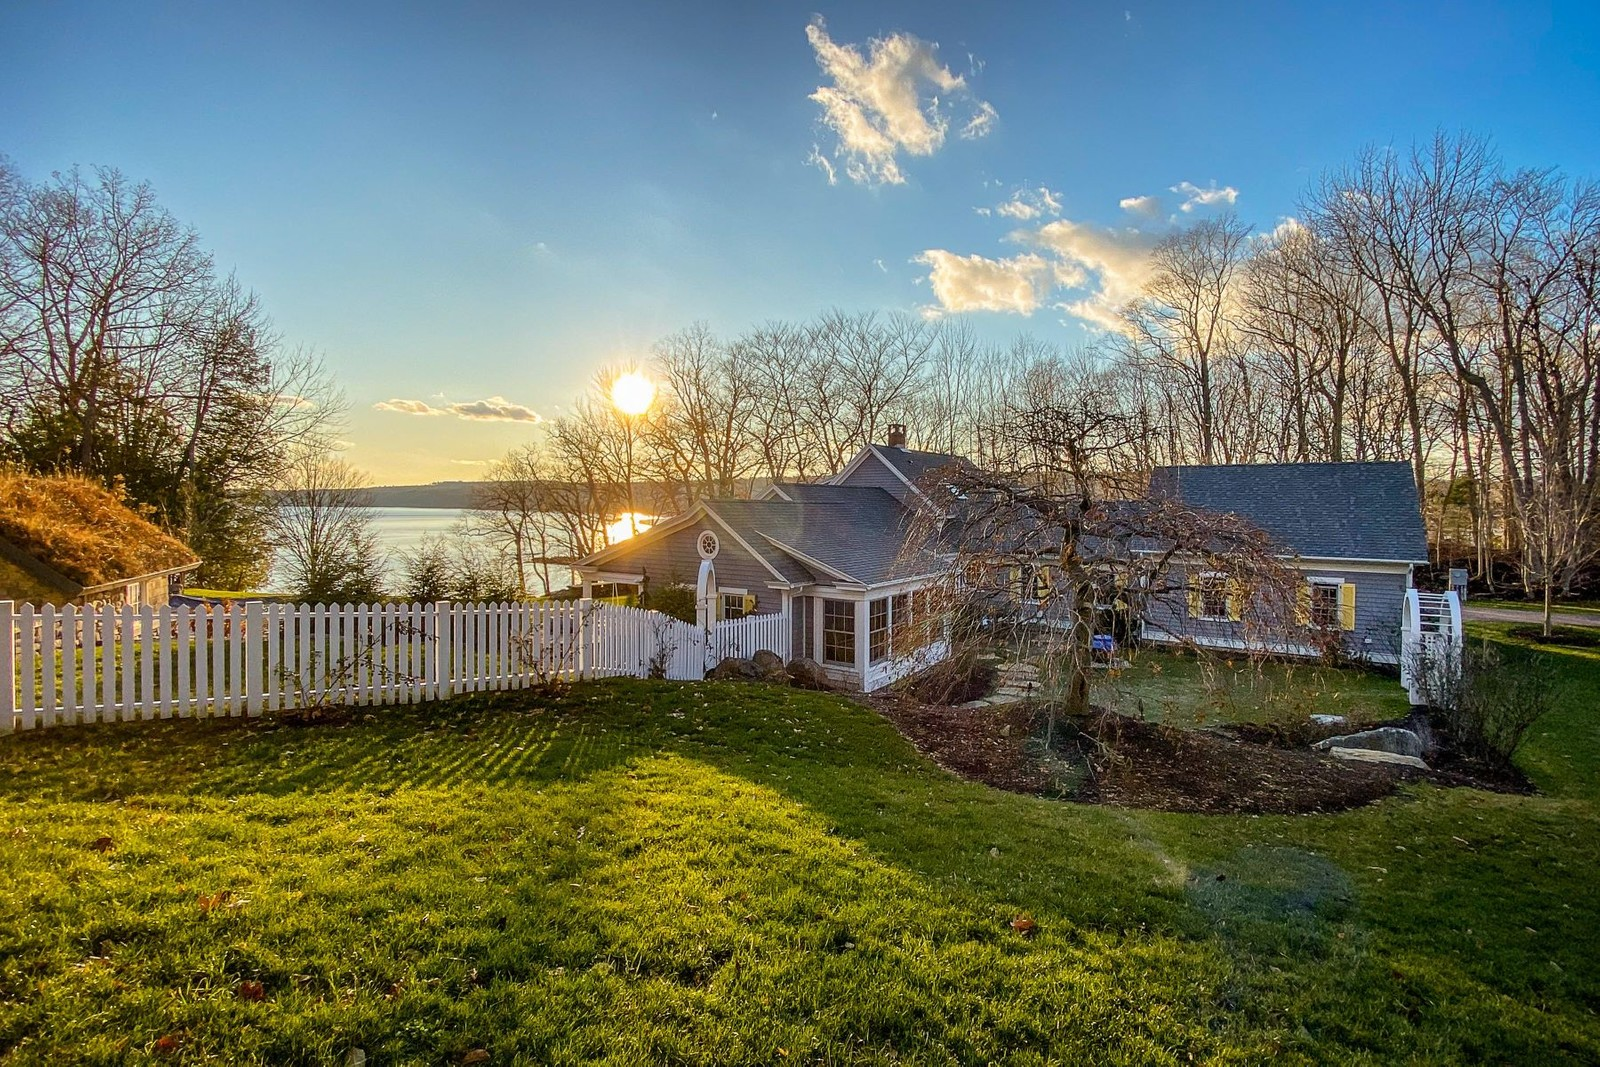 Single Family Homes for Sale at 100 Beauchamp Point Road Rockport, Maine 04856 United States